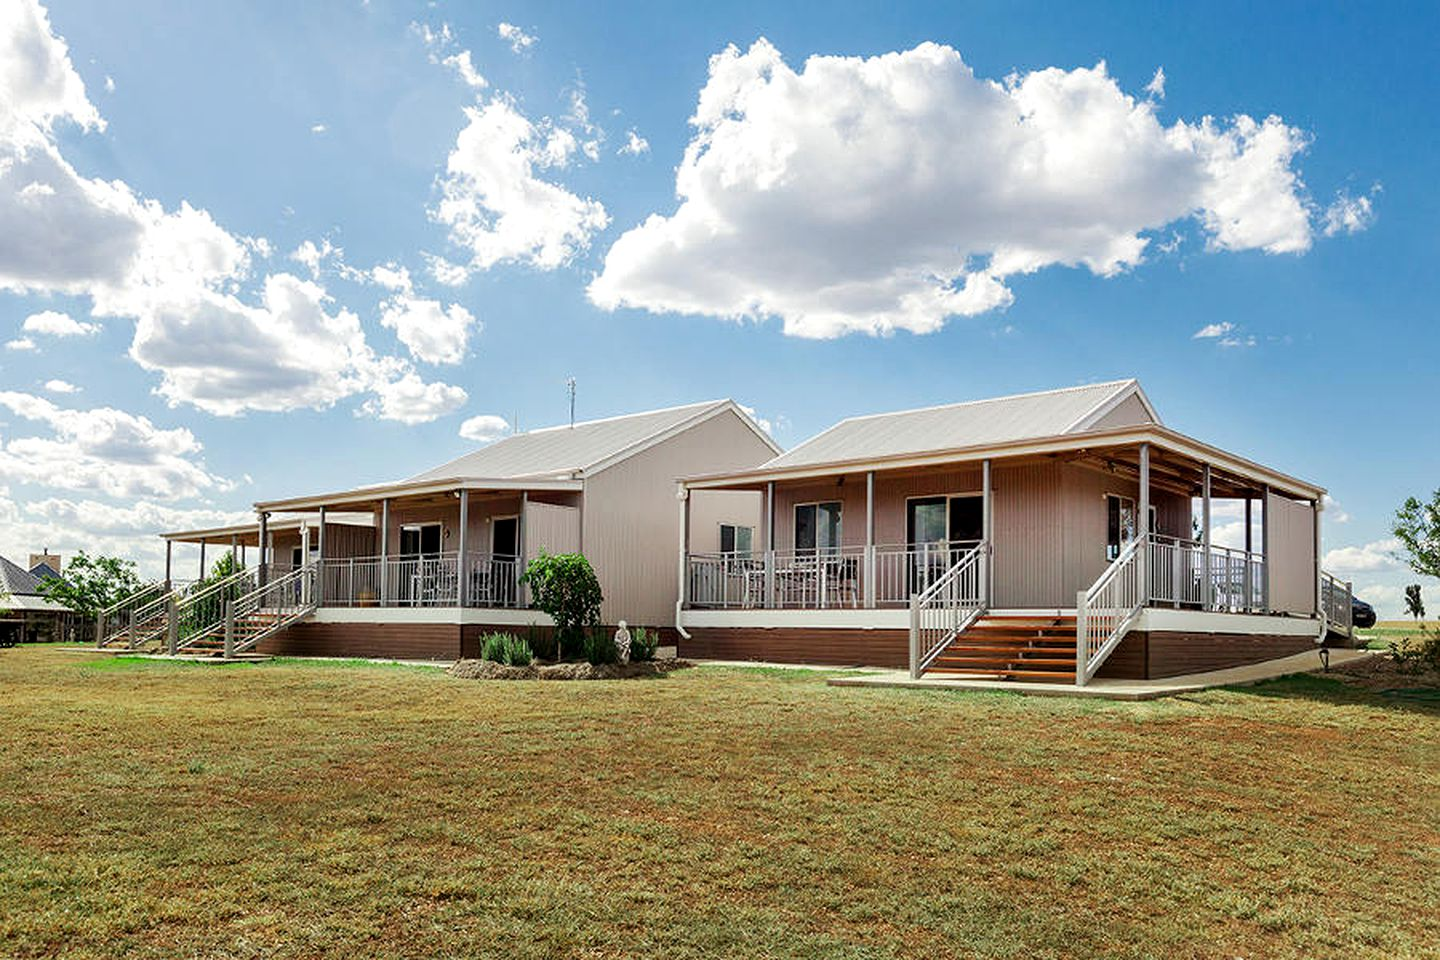 Nature Lodges (Gulgong, New South Wales, Australia)